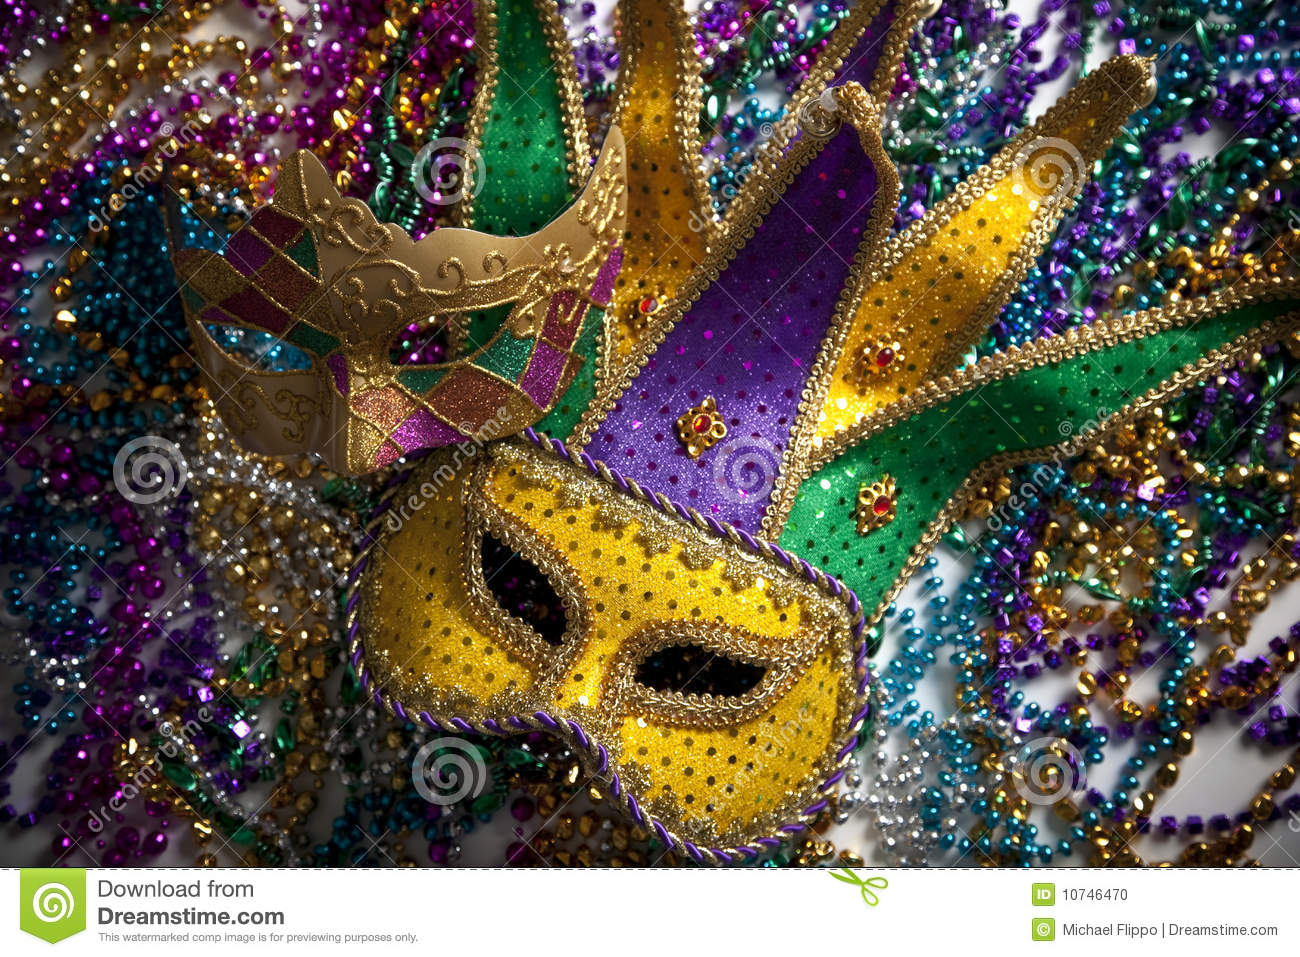 at beads hh com carnival wholesale manufacturers alibaba gras suppliers party mardi and showroom